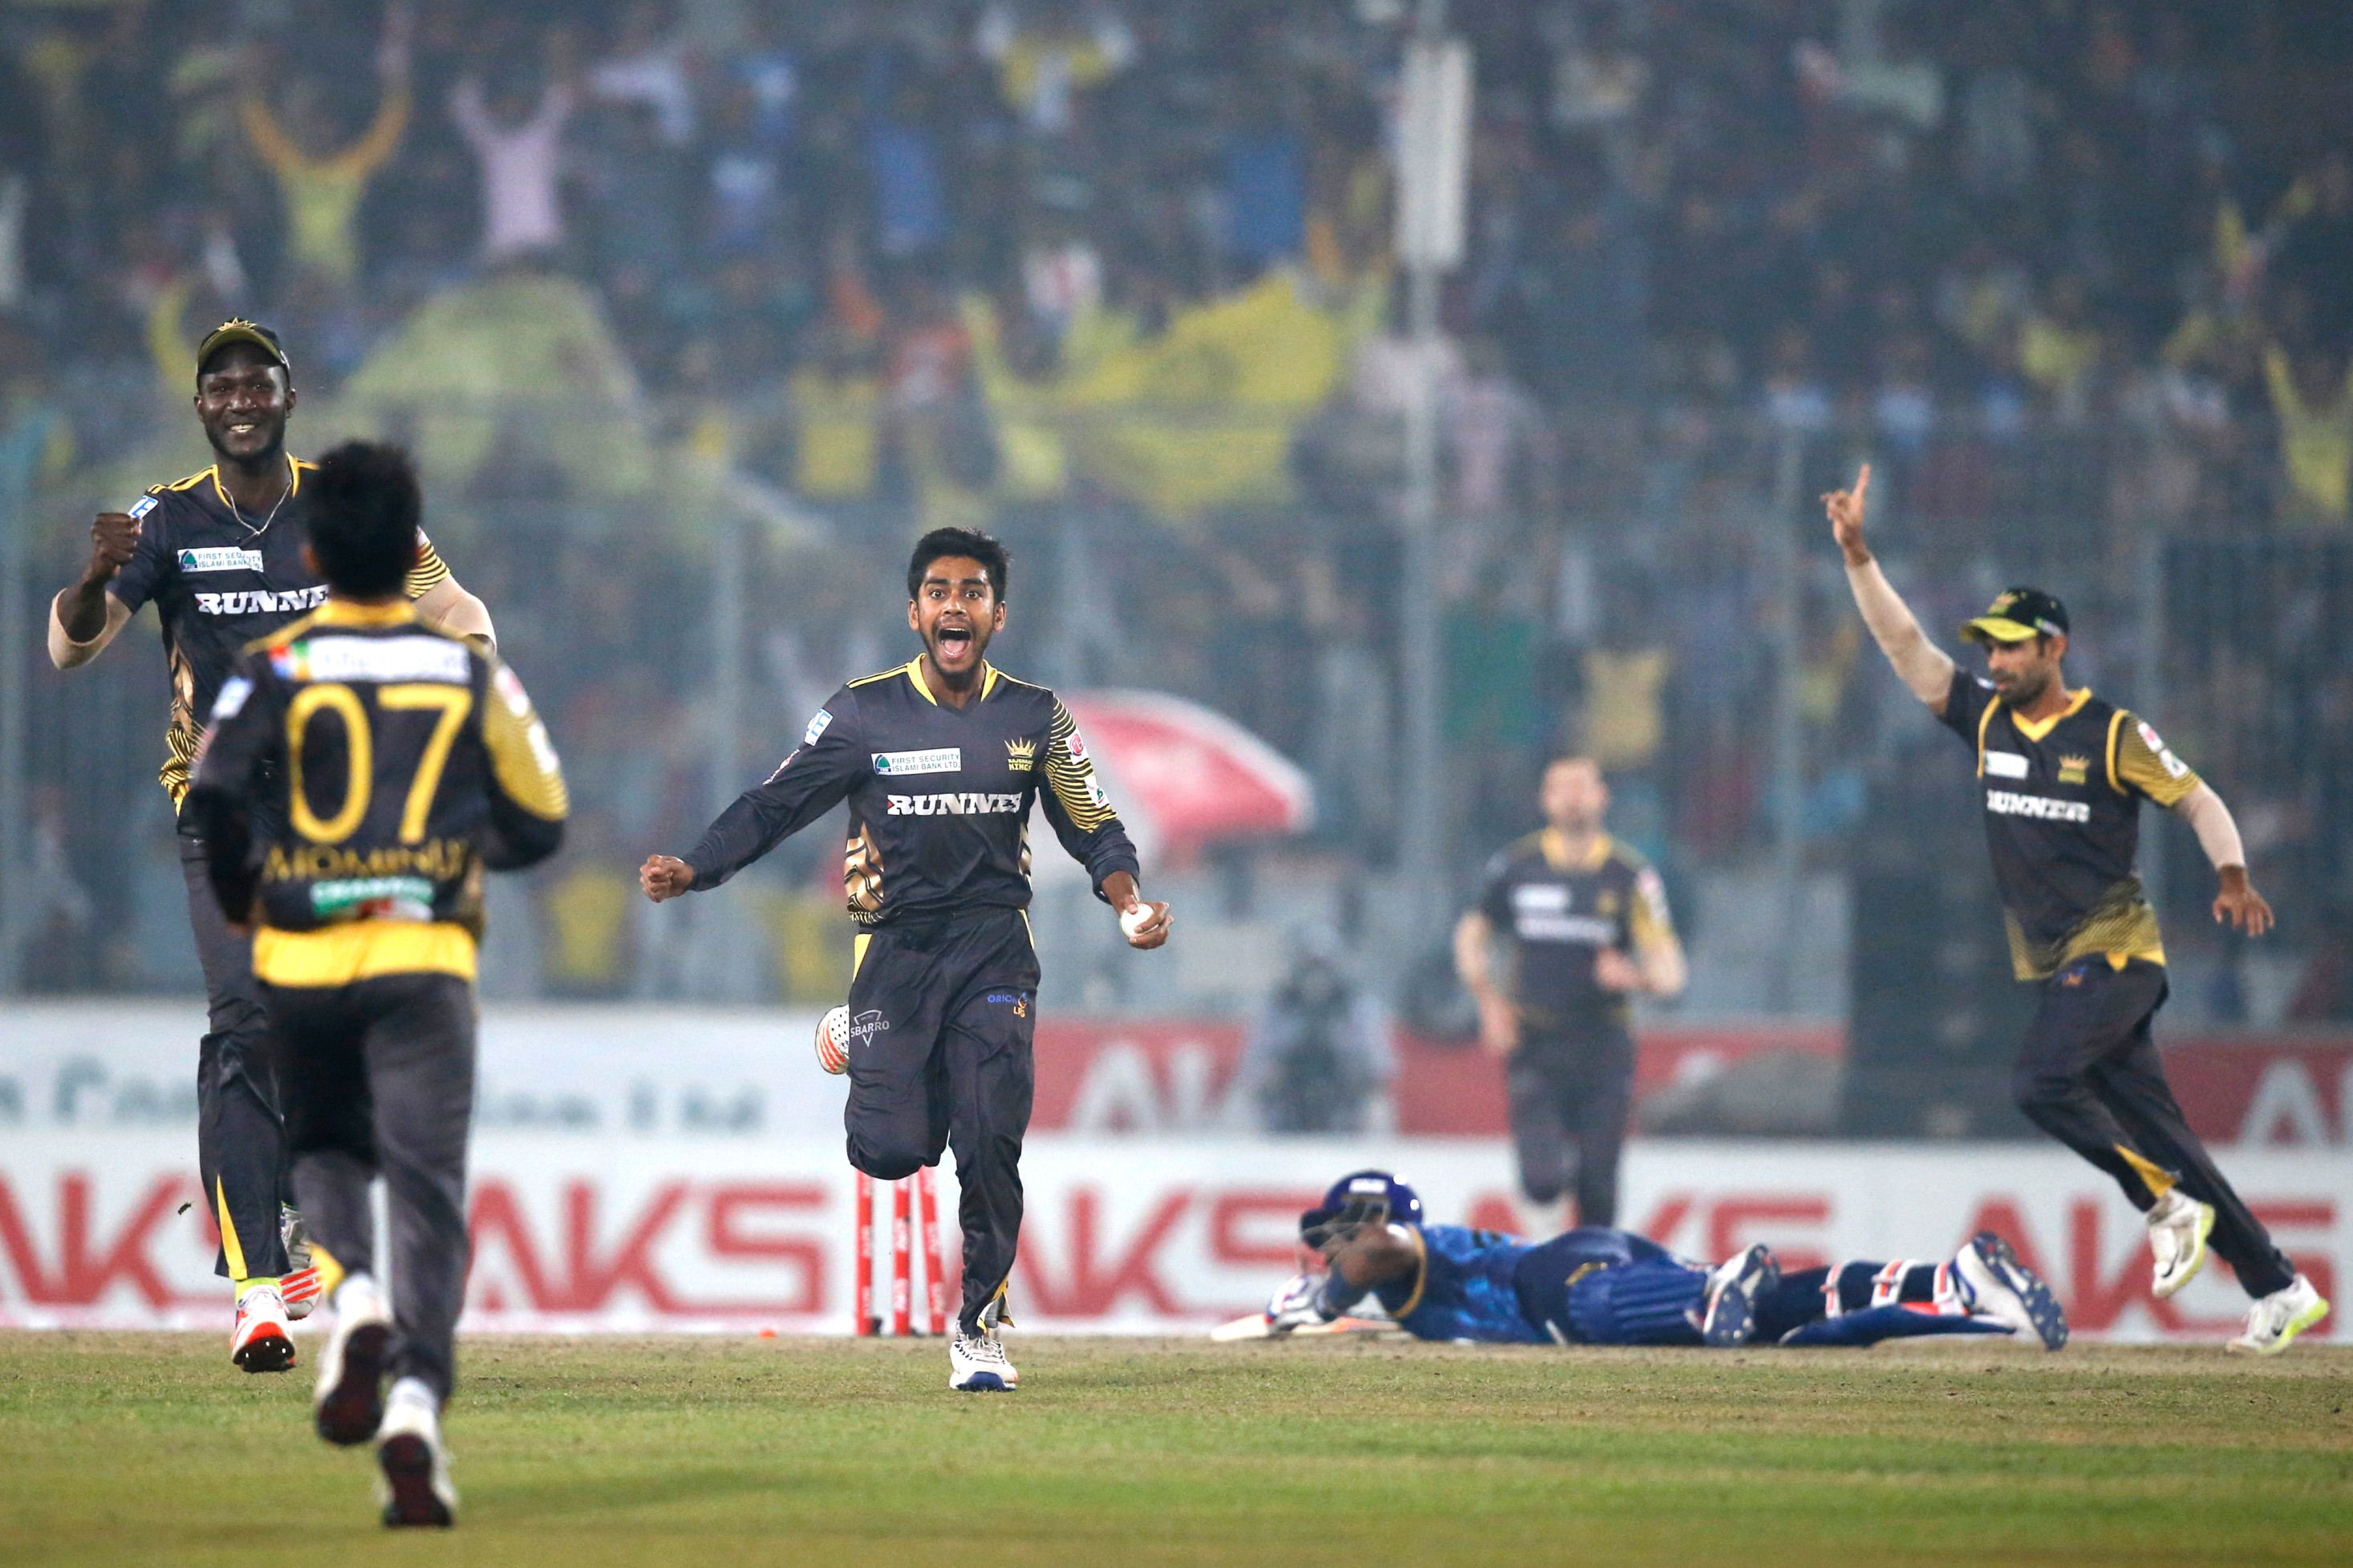 Rajshahi Kings - BPL - Bangladesh Premier League